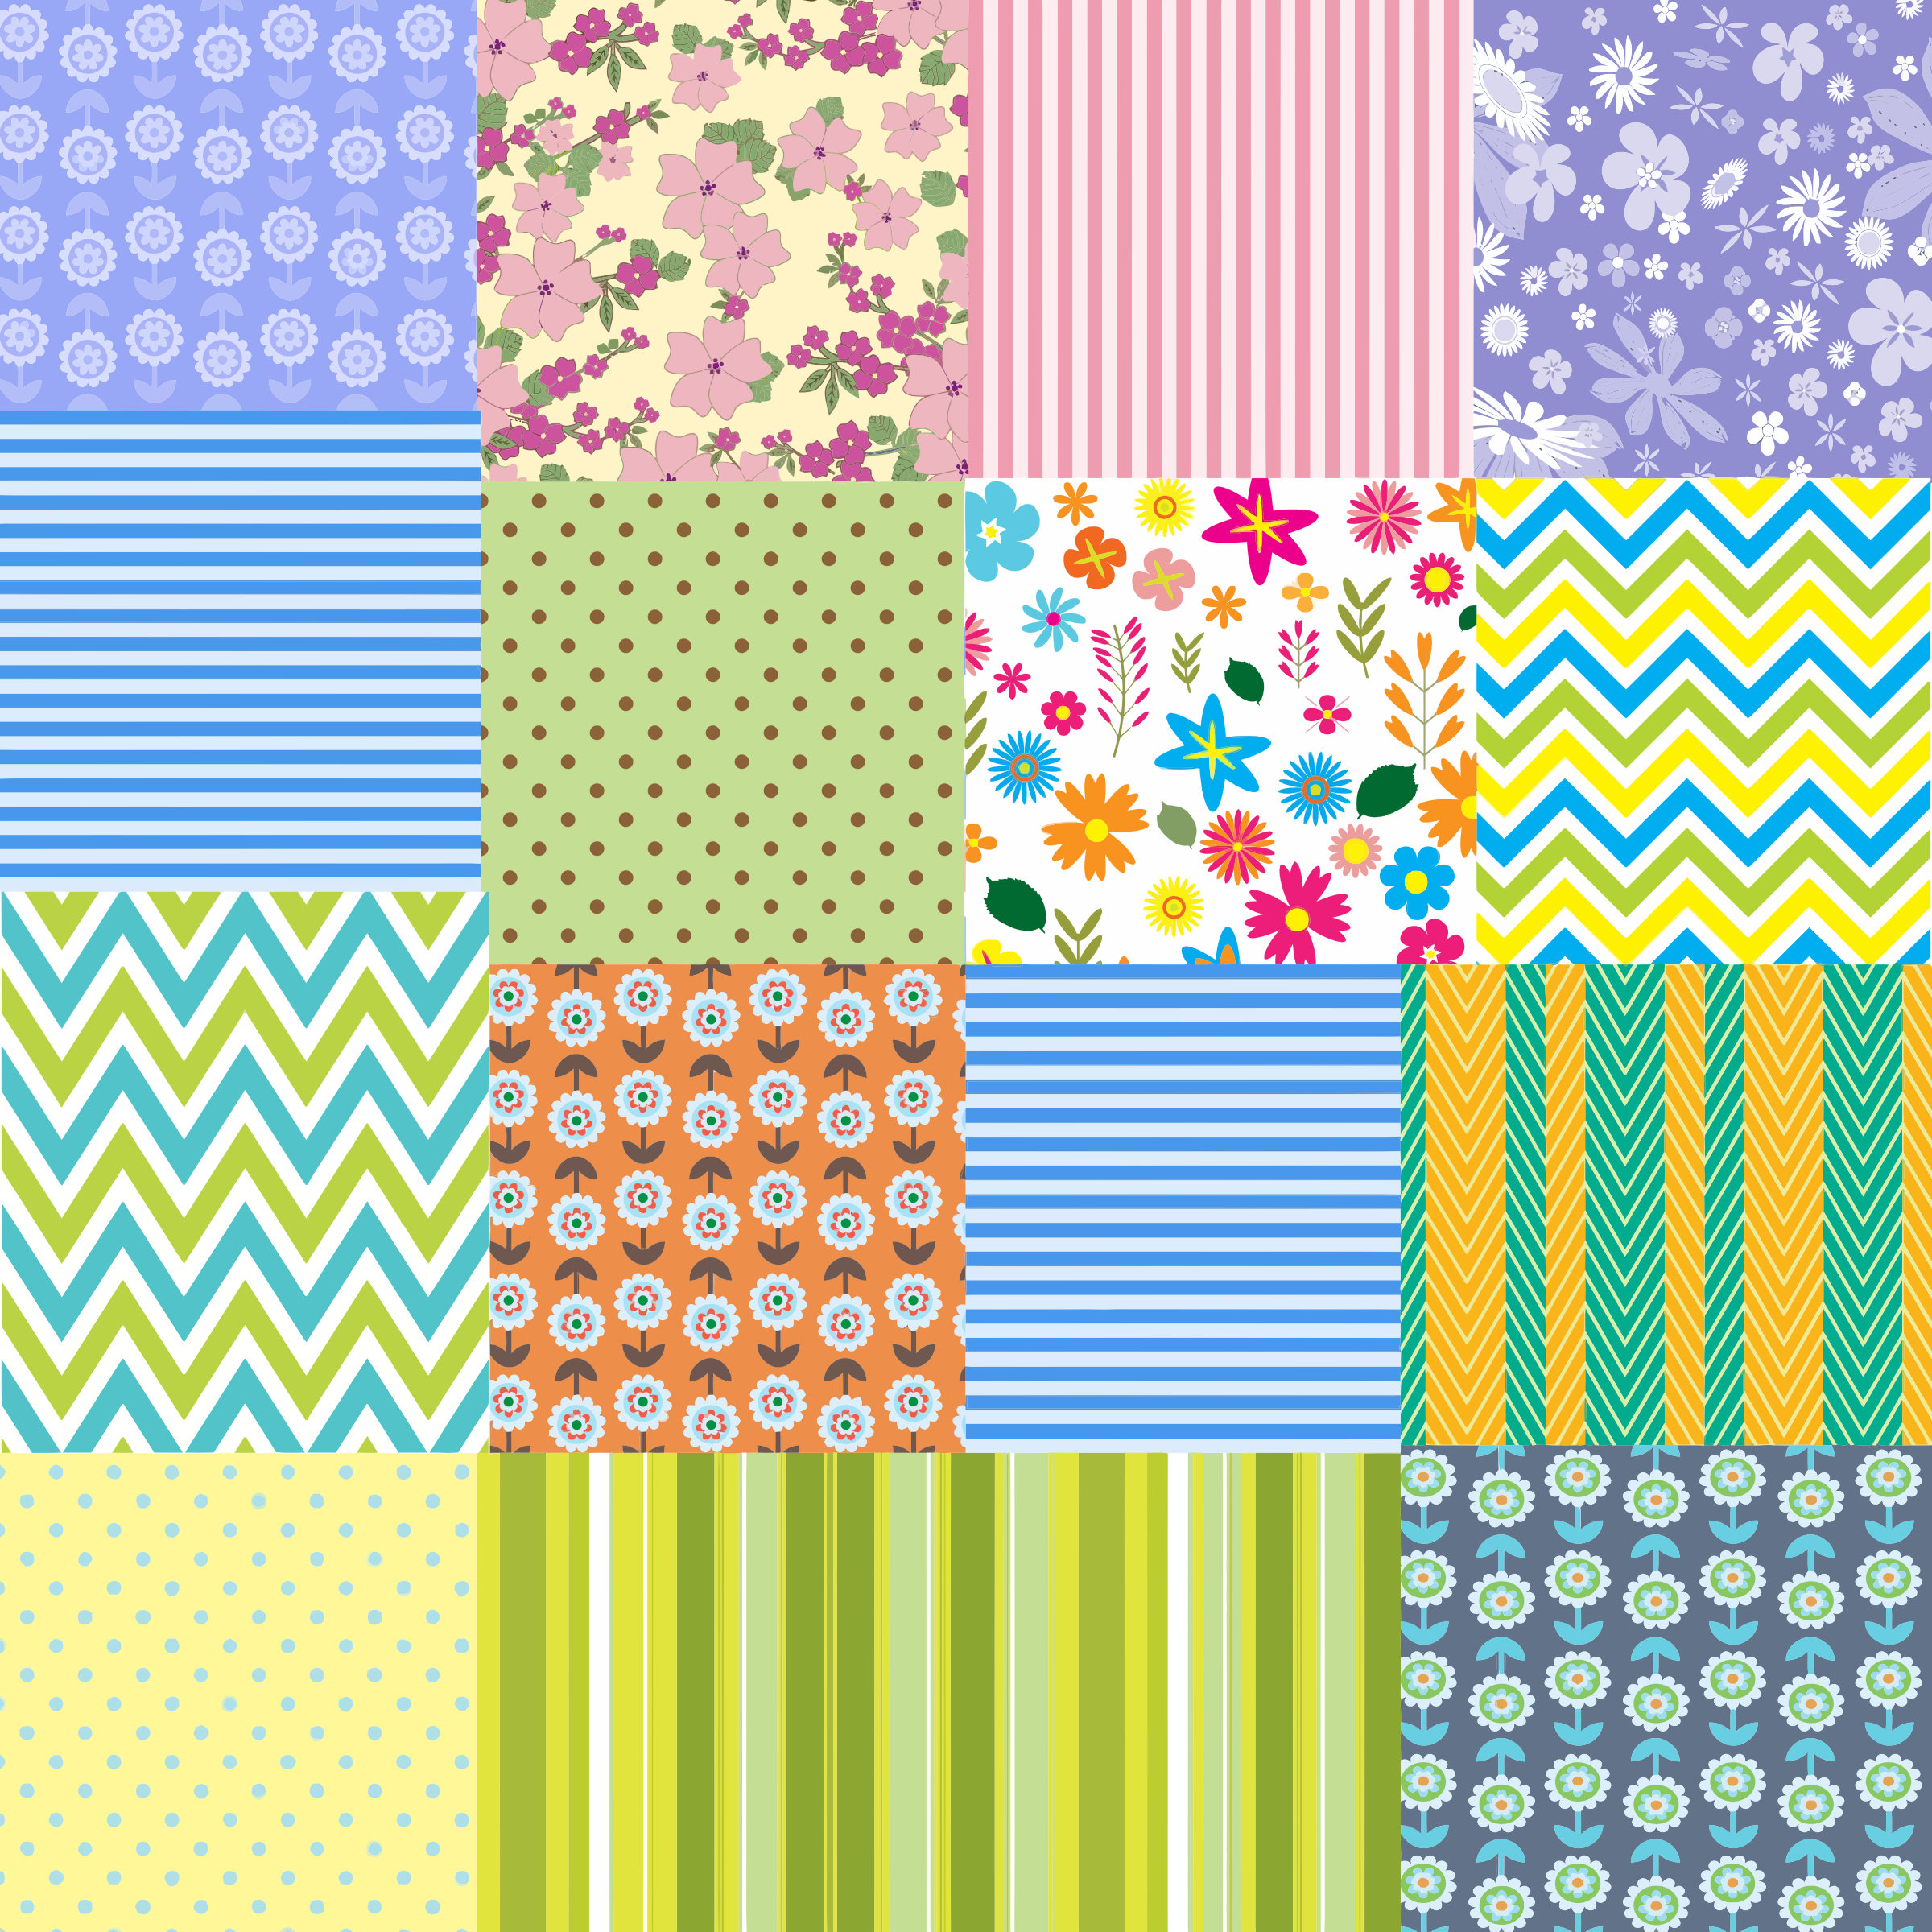 Free Quilt Cliparts, Download Free Clip Art, Free Clip Art.